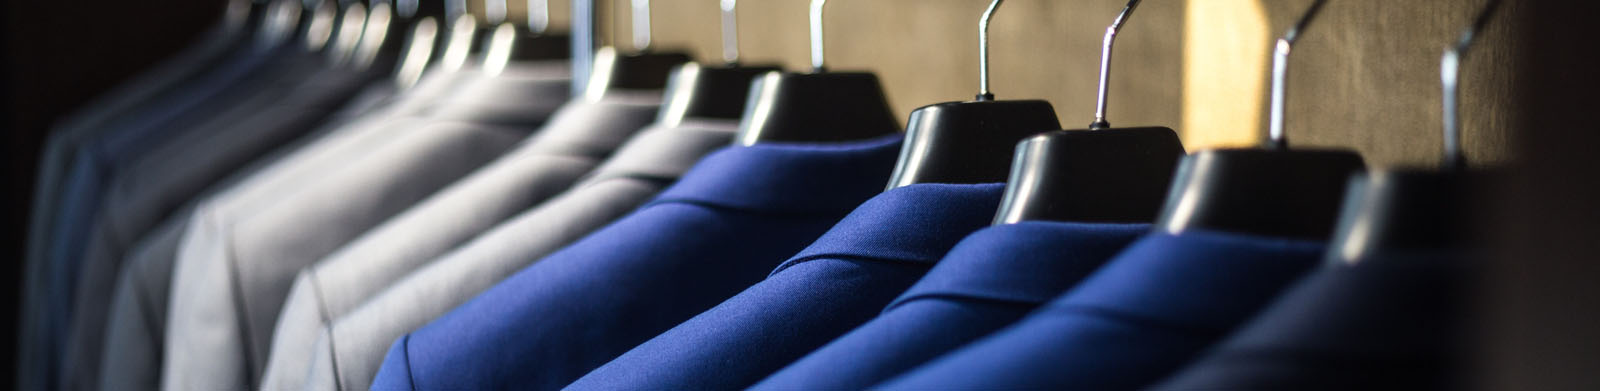 Rack of suits hanging up. Improving yourself. What you can do to find the Next You.